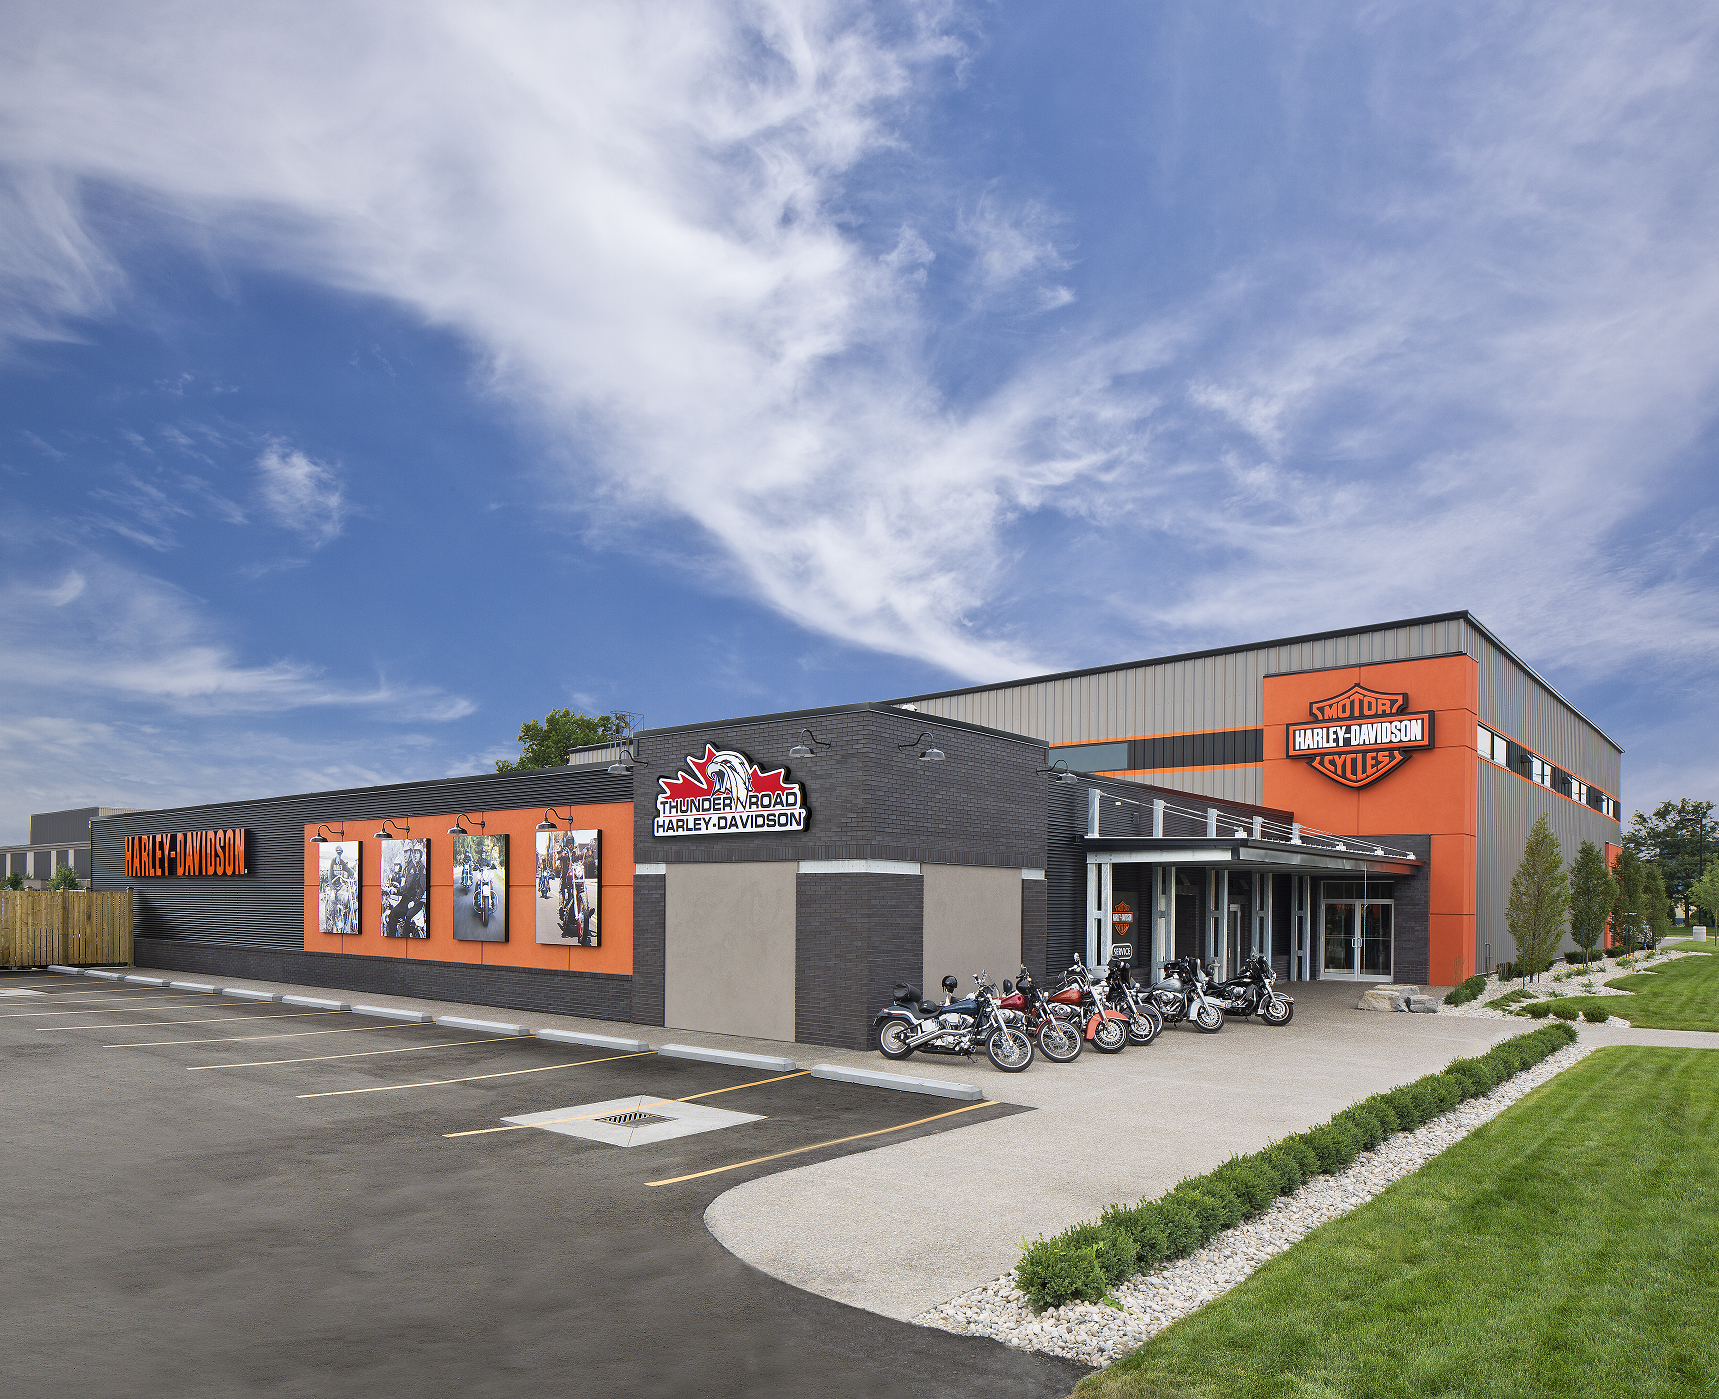 corporate structure at harley davidson Harley-davidson's marketing strategy harley-davidson is the pioneer in motorcycle manufacturing as noted earlier, the company offers a wide variety of motorcycles ranging from lightweight street motorcycles to heavyweight touring motorcycles.